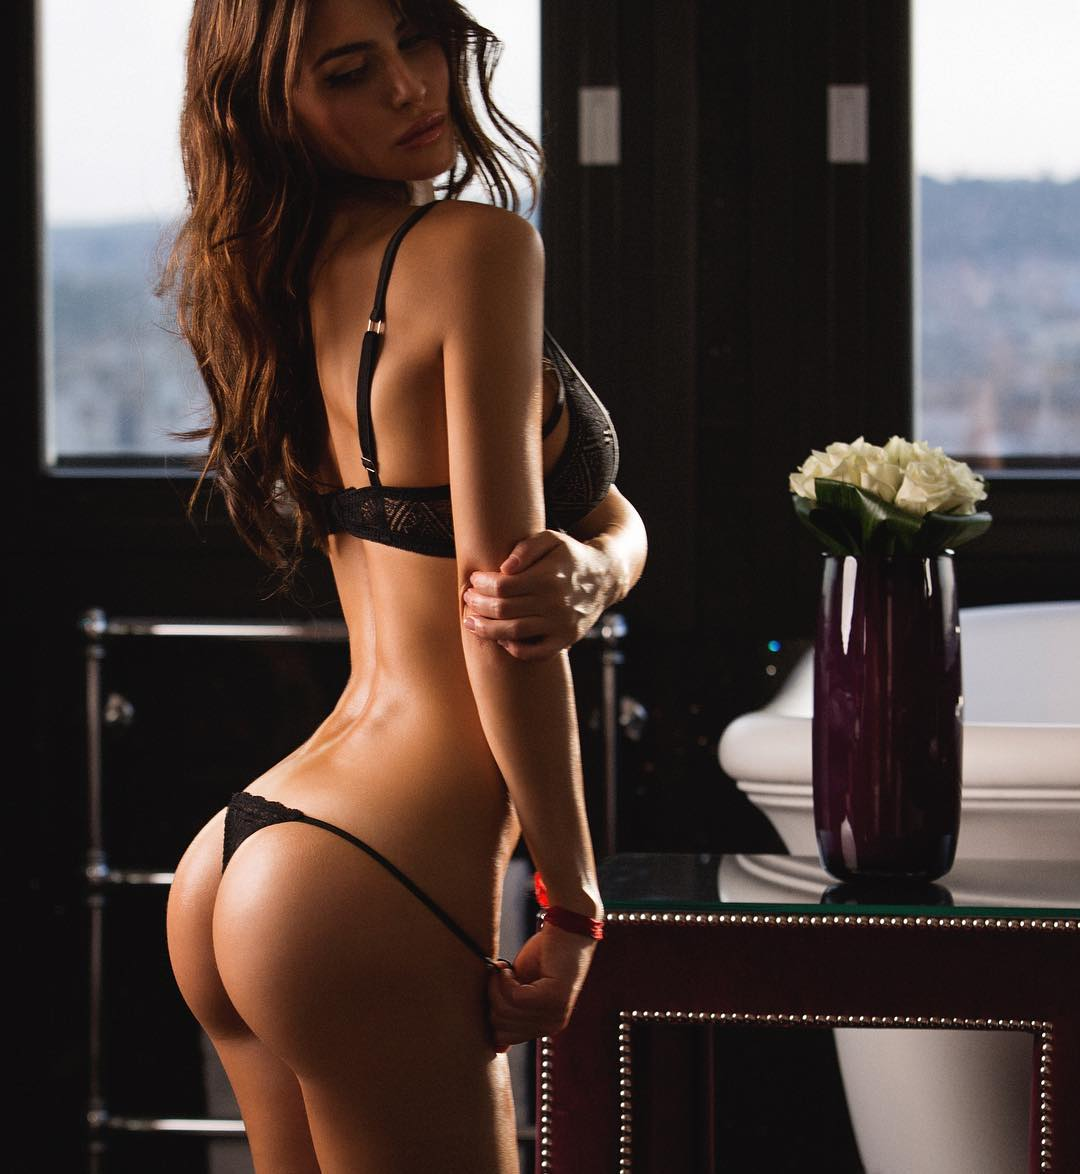 Sexy Silvia Caruso nudes (37 photo), Ass, Hot, Selfie, cleavage 2018